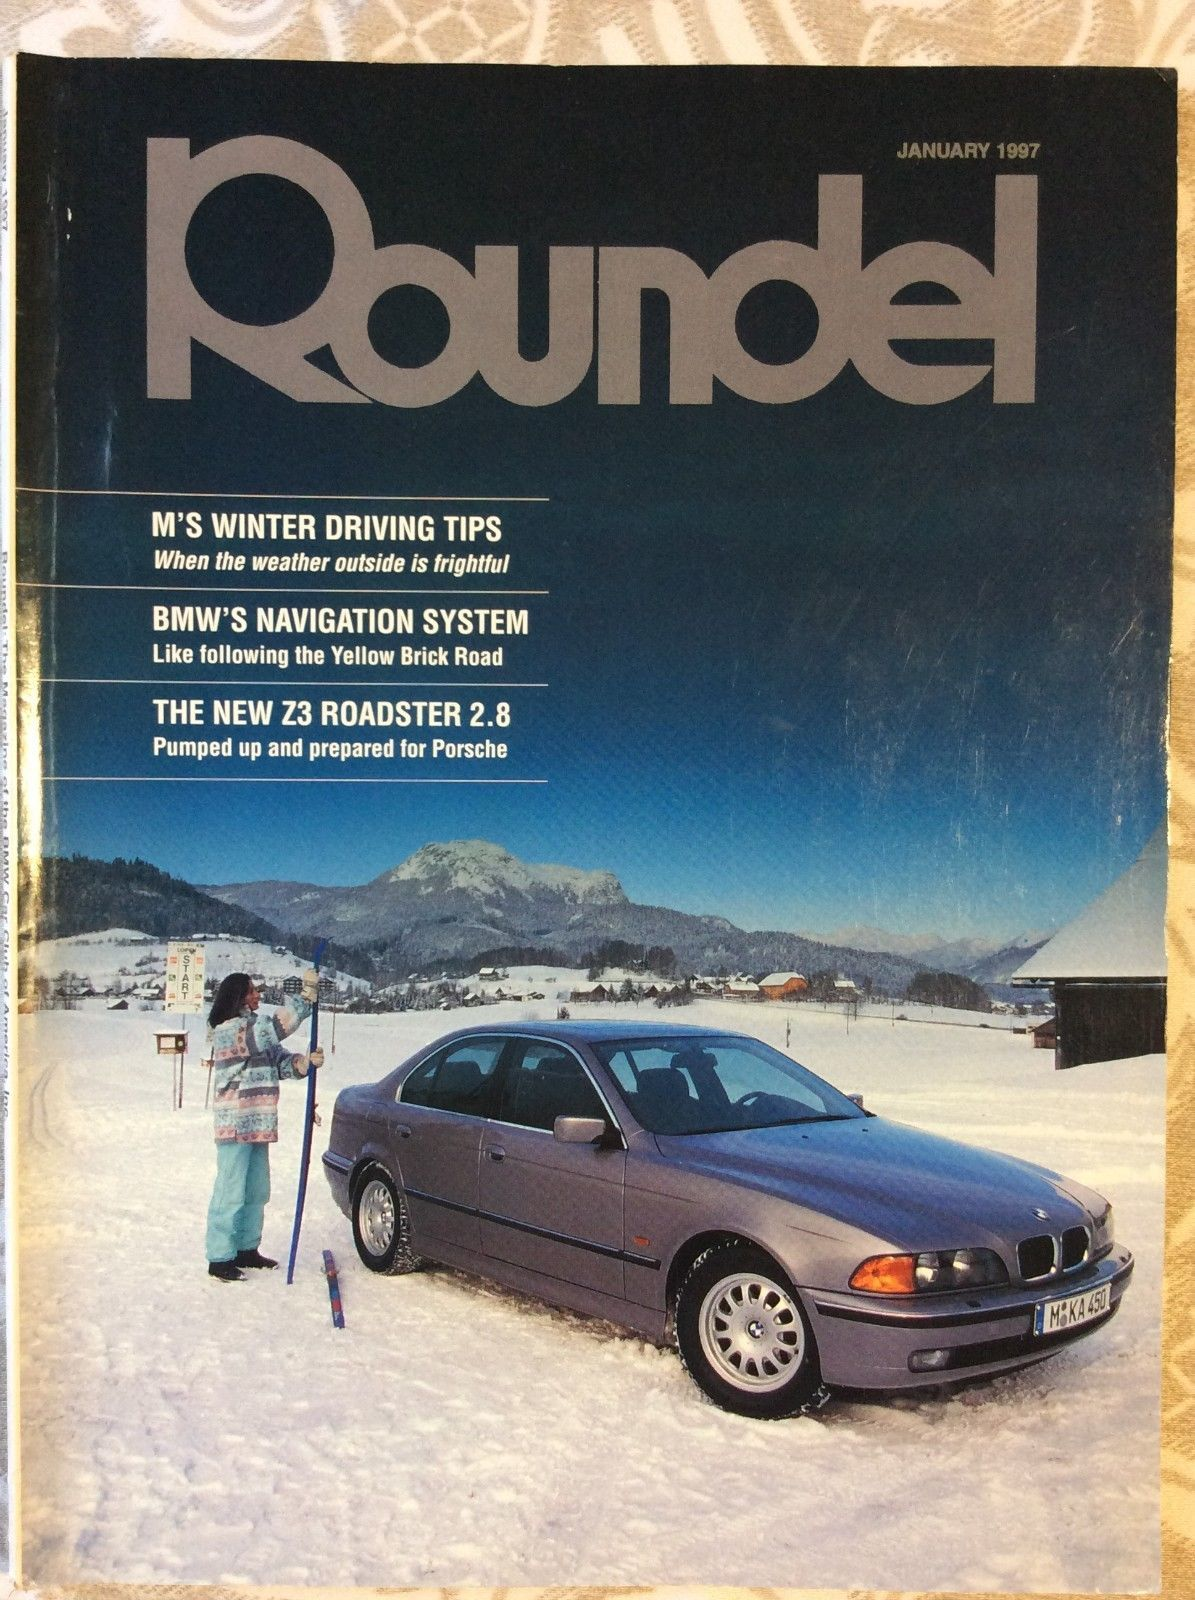 Lot Of 28 Bmw Roundel Magazines Back Issues Bmw Car Club Of America Ebay Car Club Bmw Winter Driving Tips